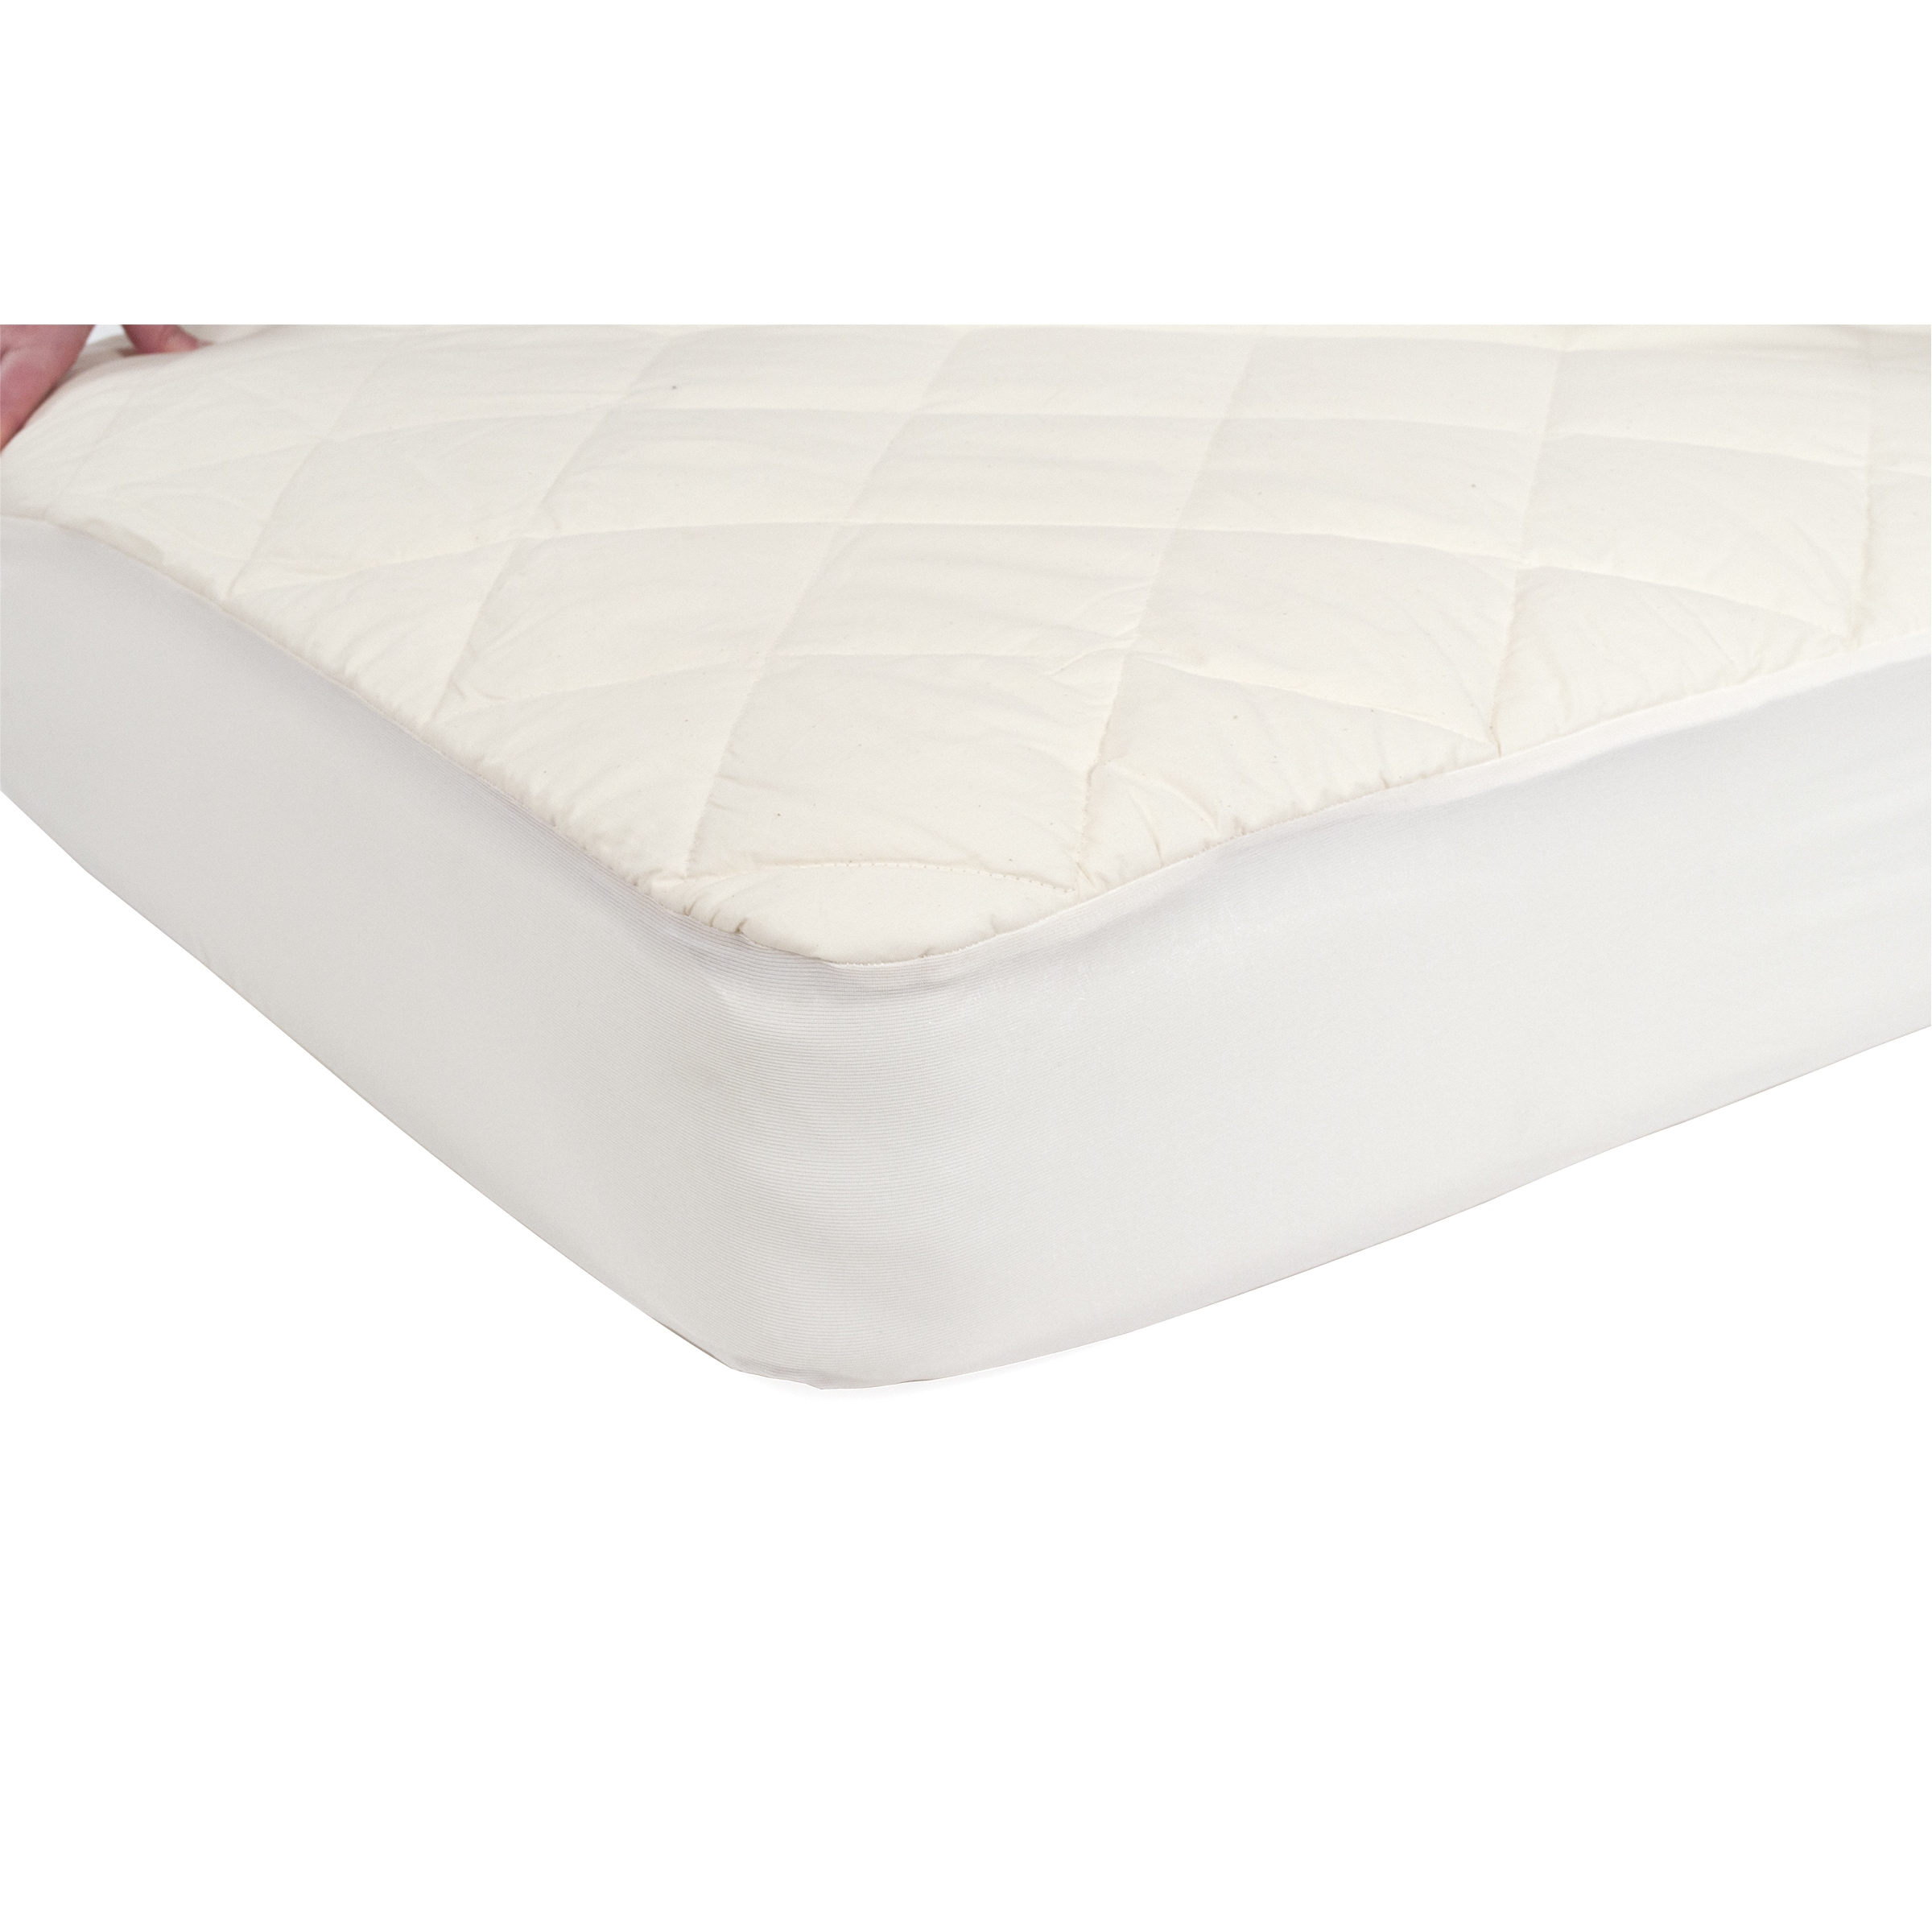 Very Helpful Crib Mattress Pad Sealy Quilted Fitted Crib Mattress Pad with Organic Cotton Top and  Waterproof Layer - Natural